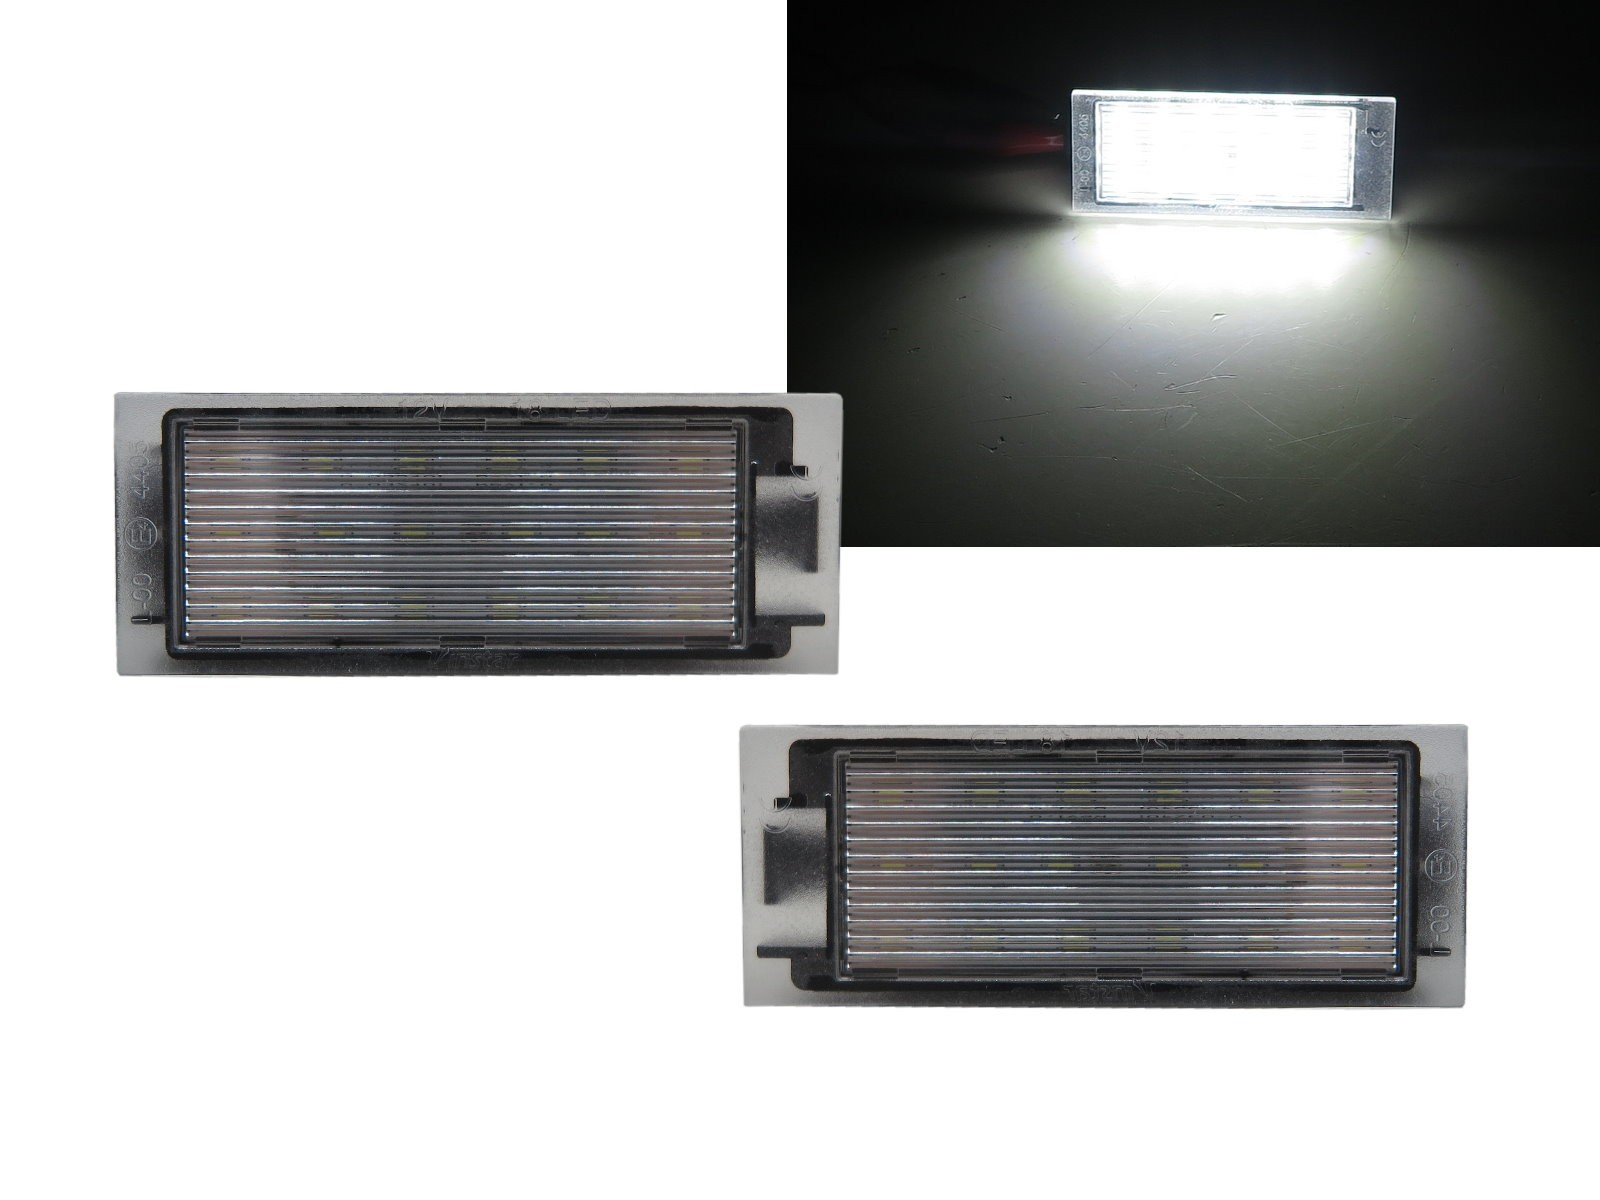 CrazyTheGod MEGANE II Second generation 2006-2009 Hatchback/Wagon 3D/5D LED License Lamp White for RENAULT